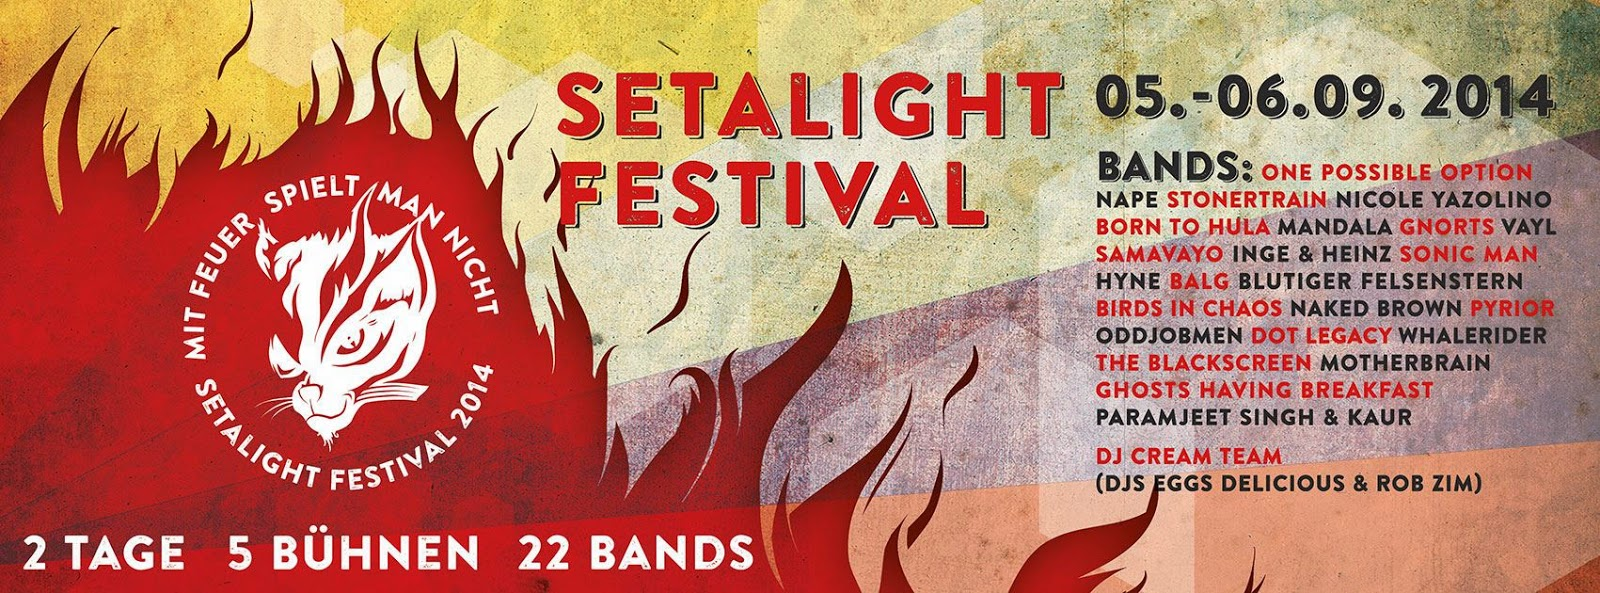 https://www.facebook.com/setalightfestival